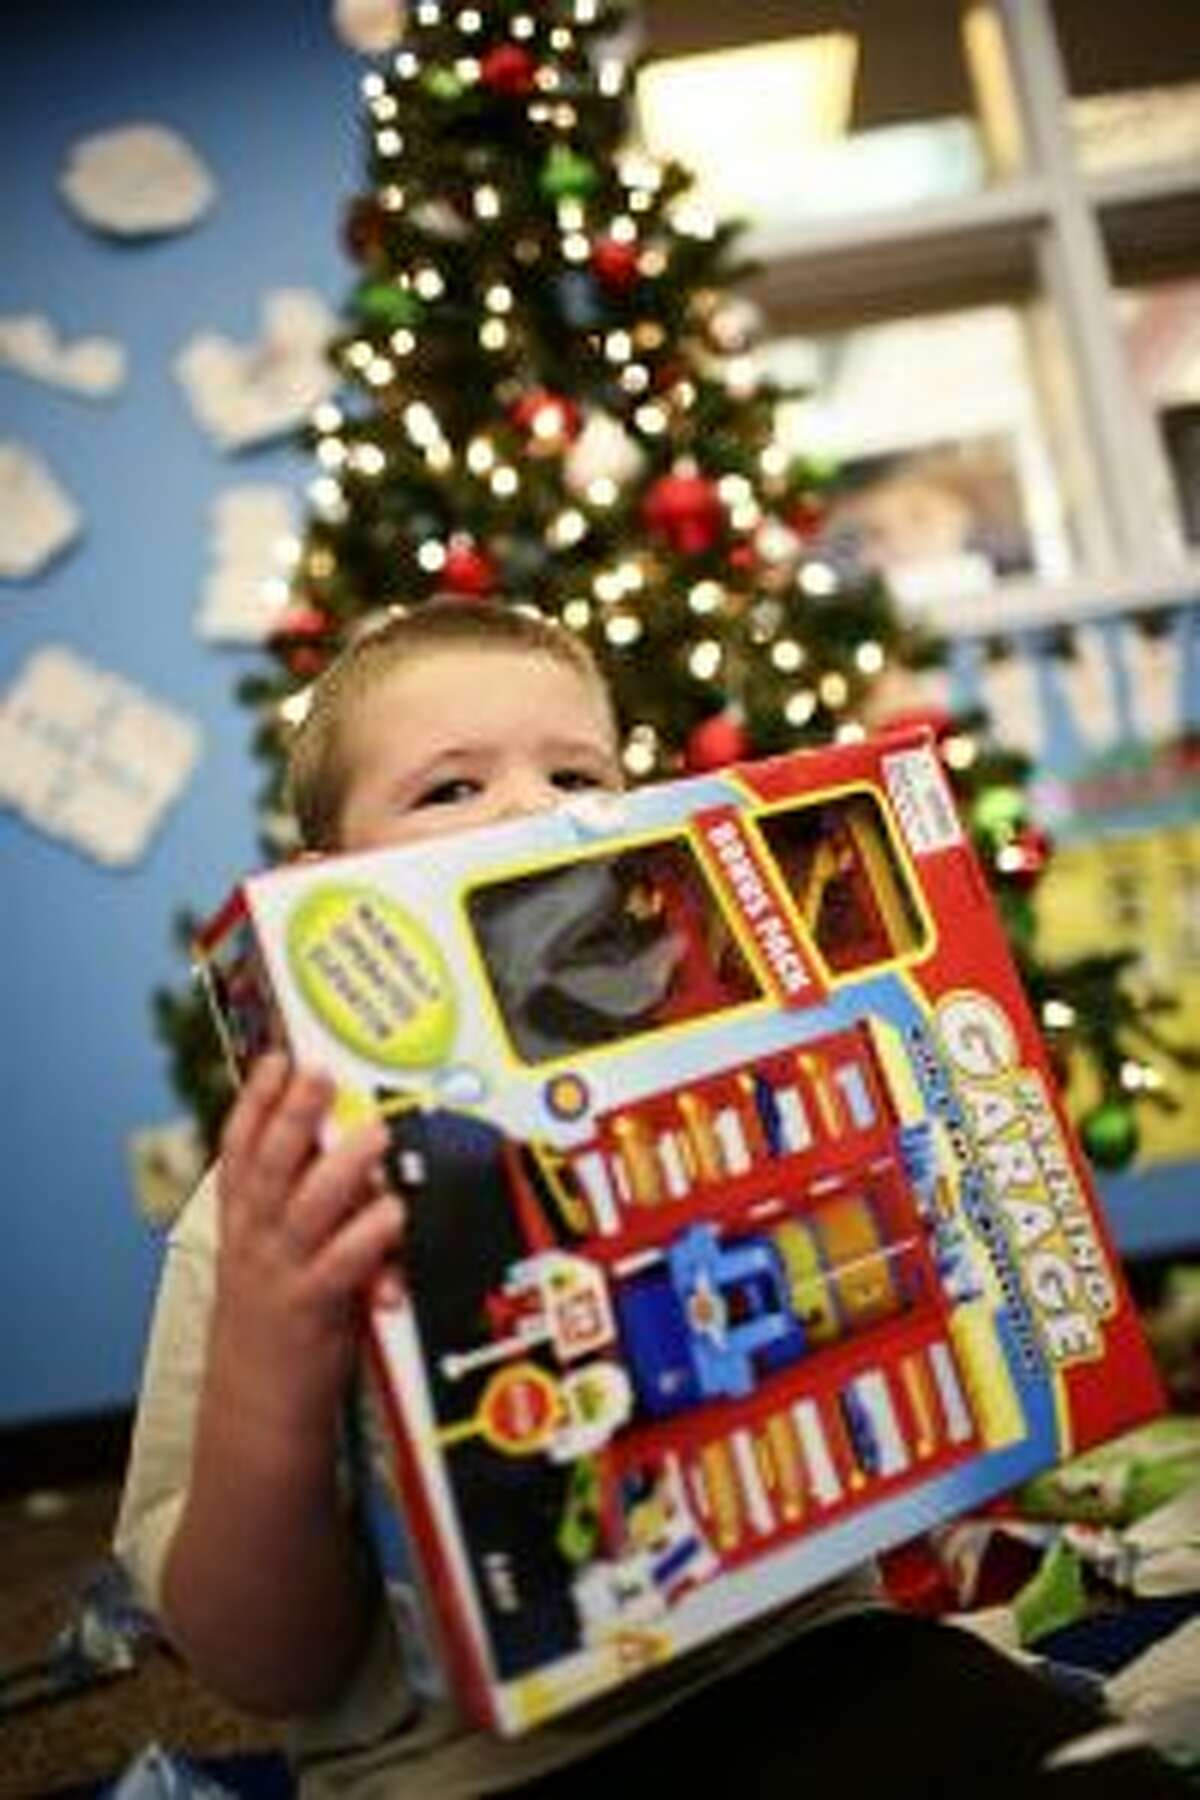 Youngsters throughout Mecosta, Osceola, Lake and Newaygo counties will receive Christmas presents thanks to the Salvation Army Angel Tree program. Sign-ups begin Monday. (Courtesy photo)